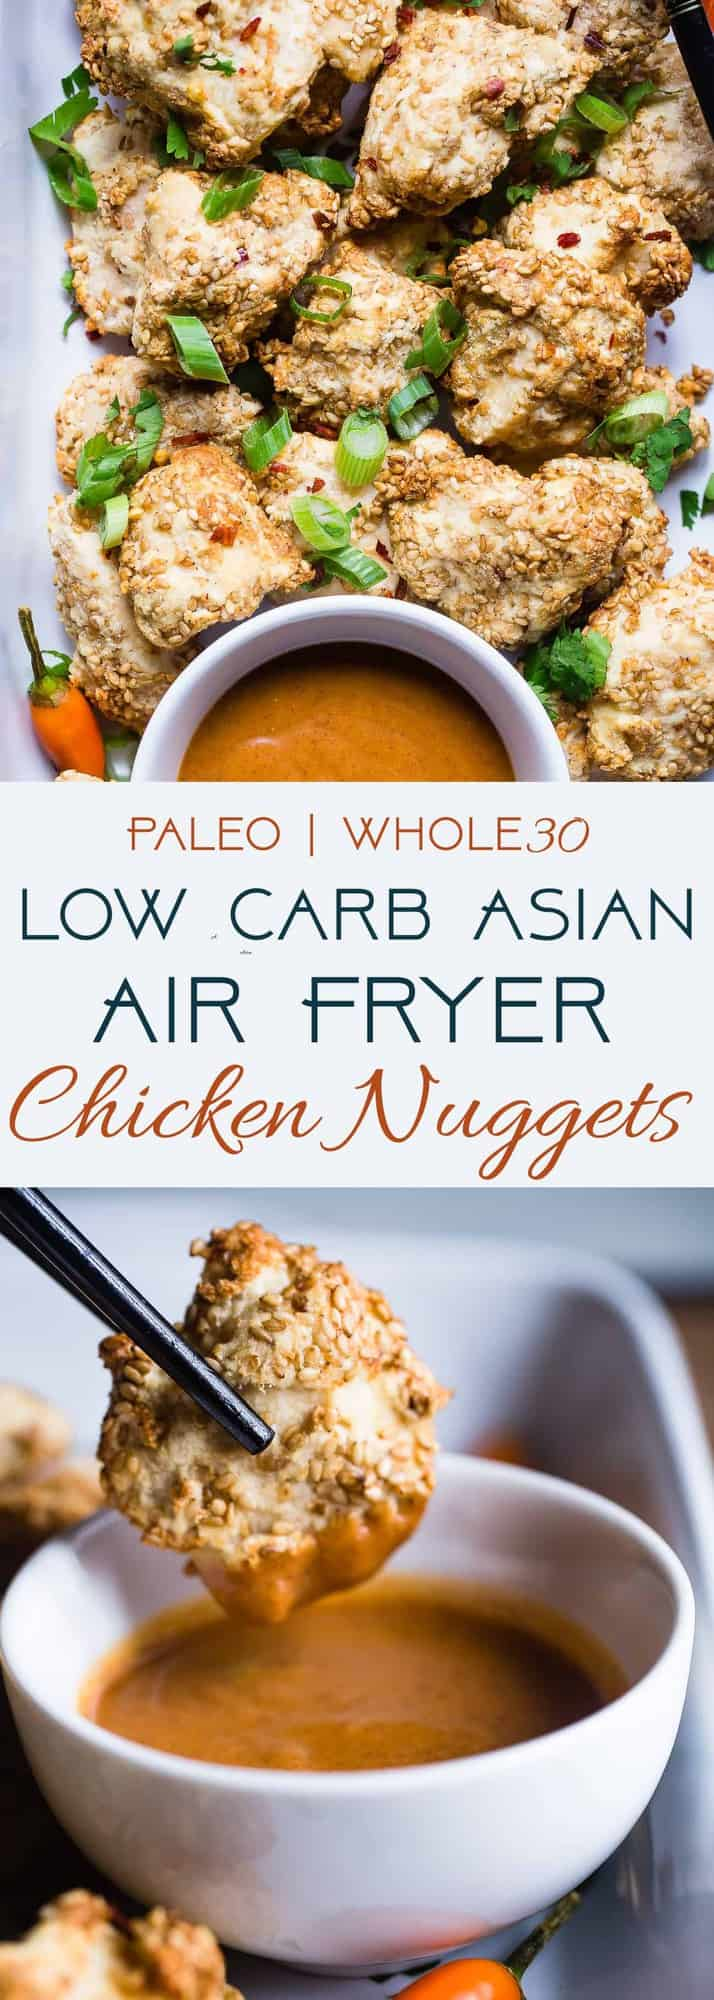 Crispy Low Carb Air Fryer Chicken Nuggets - These baked chicken nuggets are are cooked in the air fryer and have an Asian twist! A healthy, whole30, gluten free, family-friendly weeknight dinner that even picky eaters will love! Oven baked option too! | #Foodfaithfitness | #Paleo #Whole30 #Lowcarb #Glutenfree #Keto